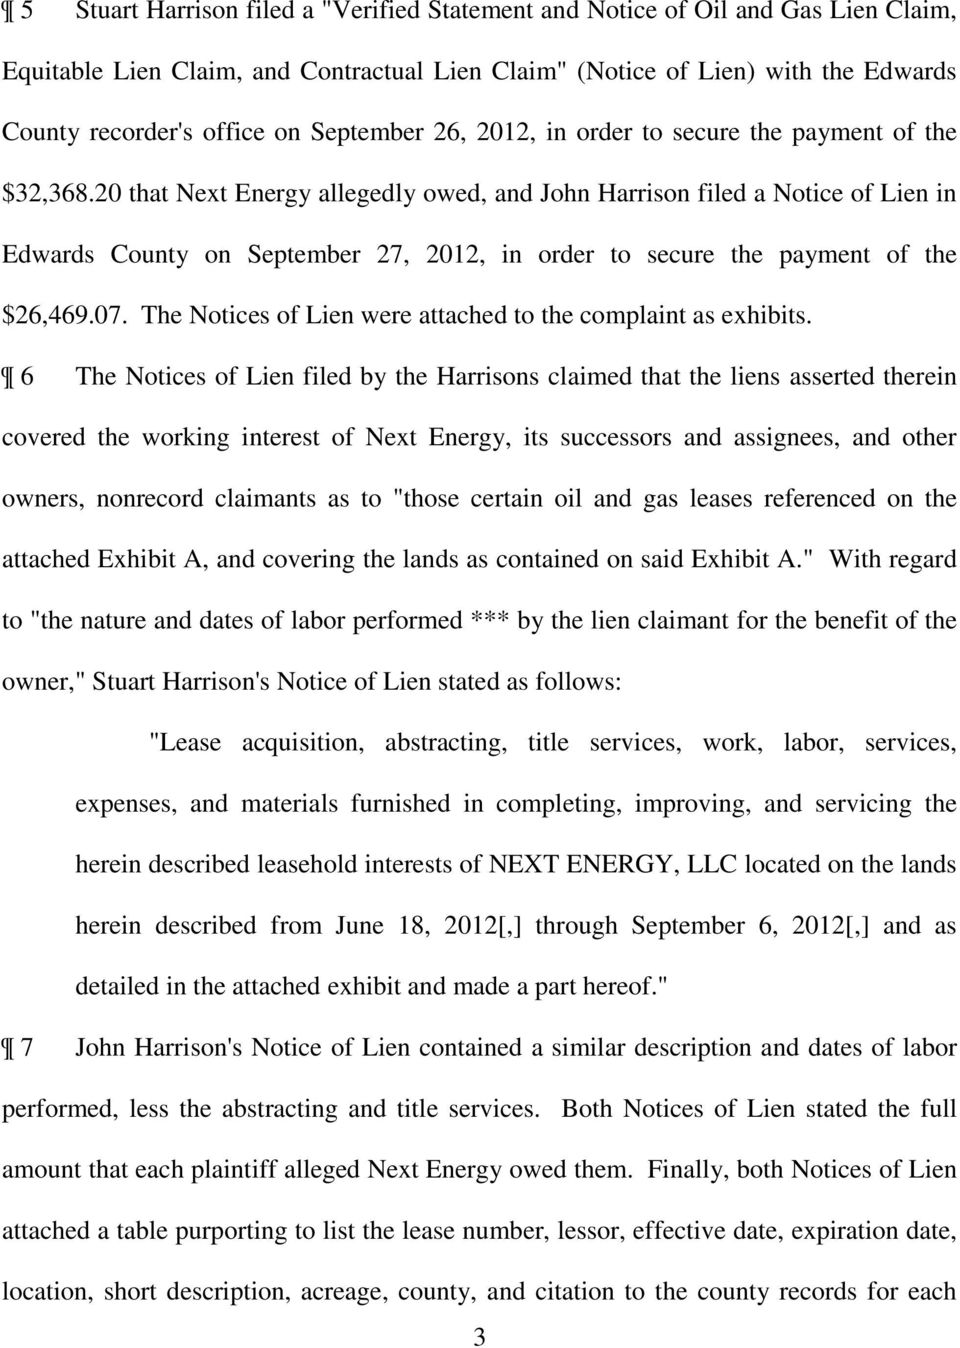 20 that Next Energy allegedly owed, and John Harrison filed a Notice of Lien in Edwards County on September 27, 2012, in order to secure the payment of the $26,469.07.